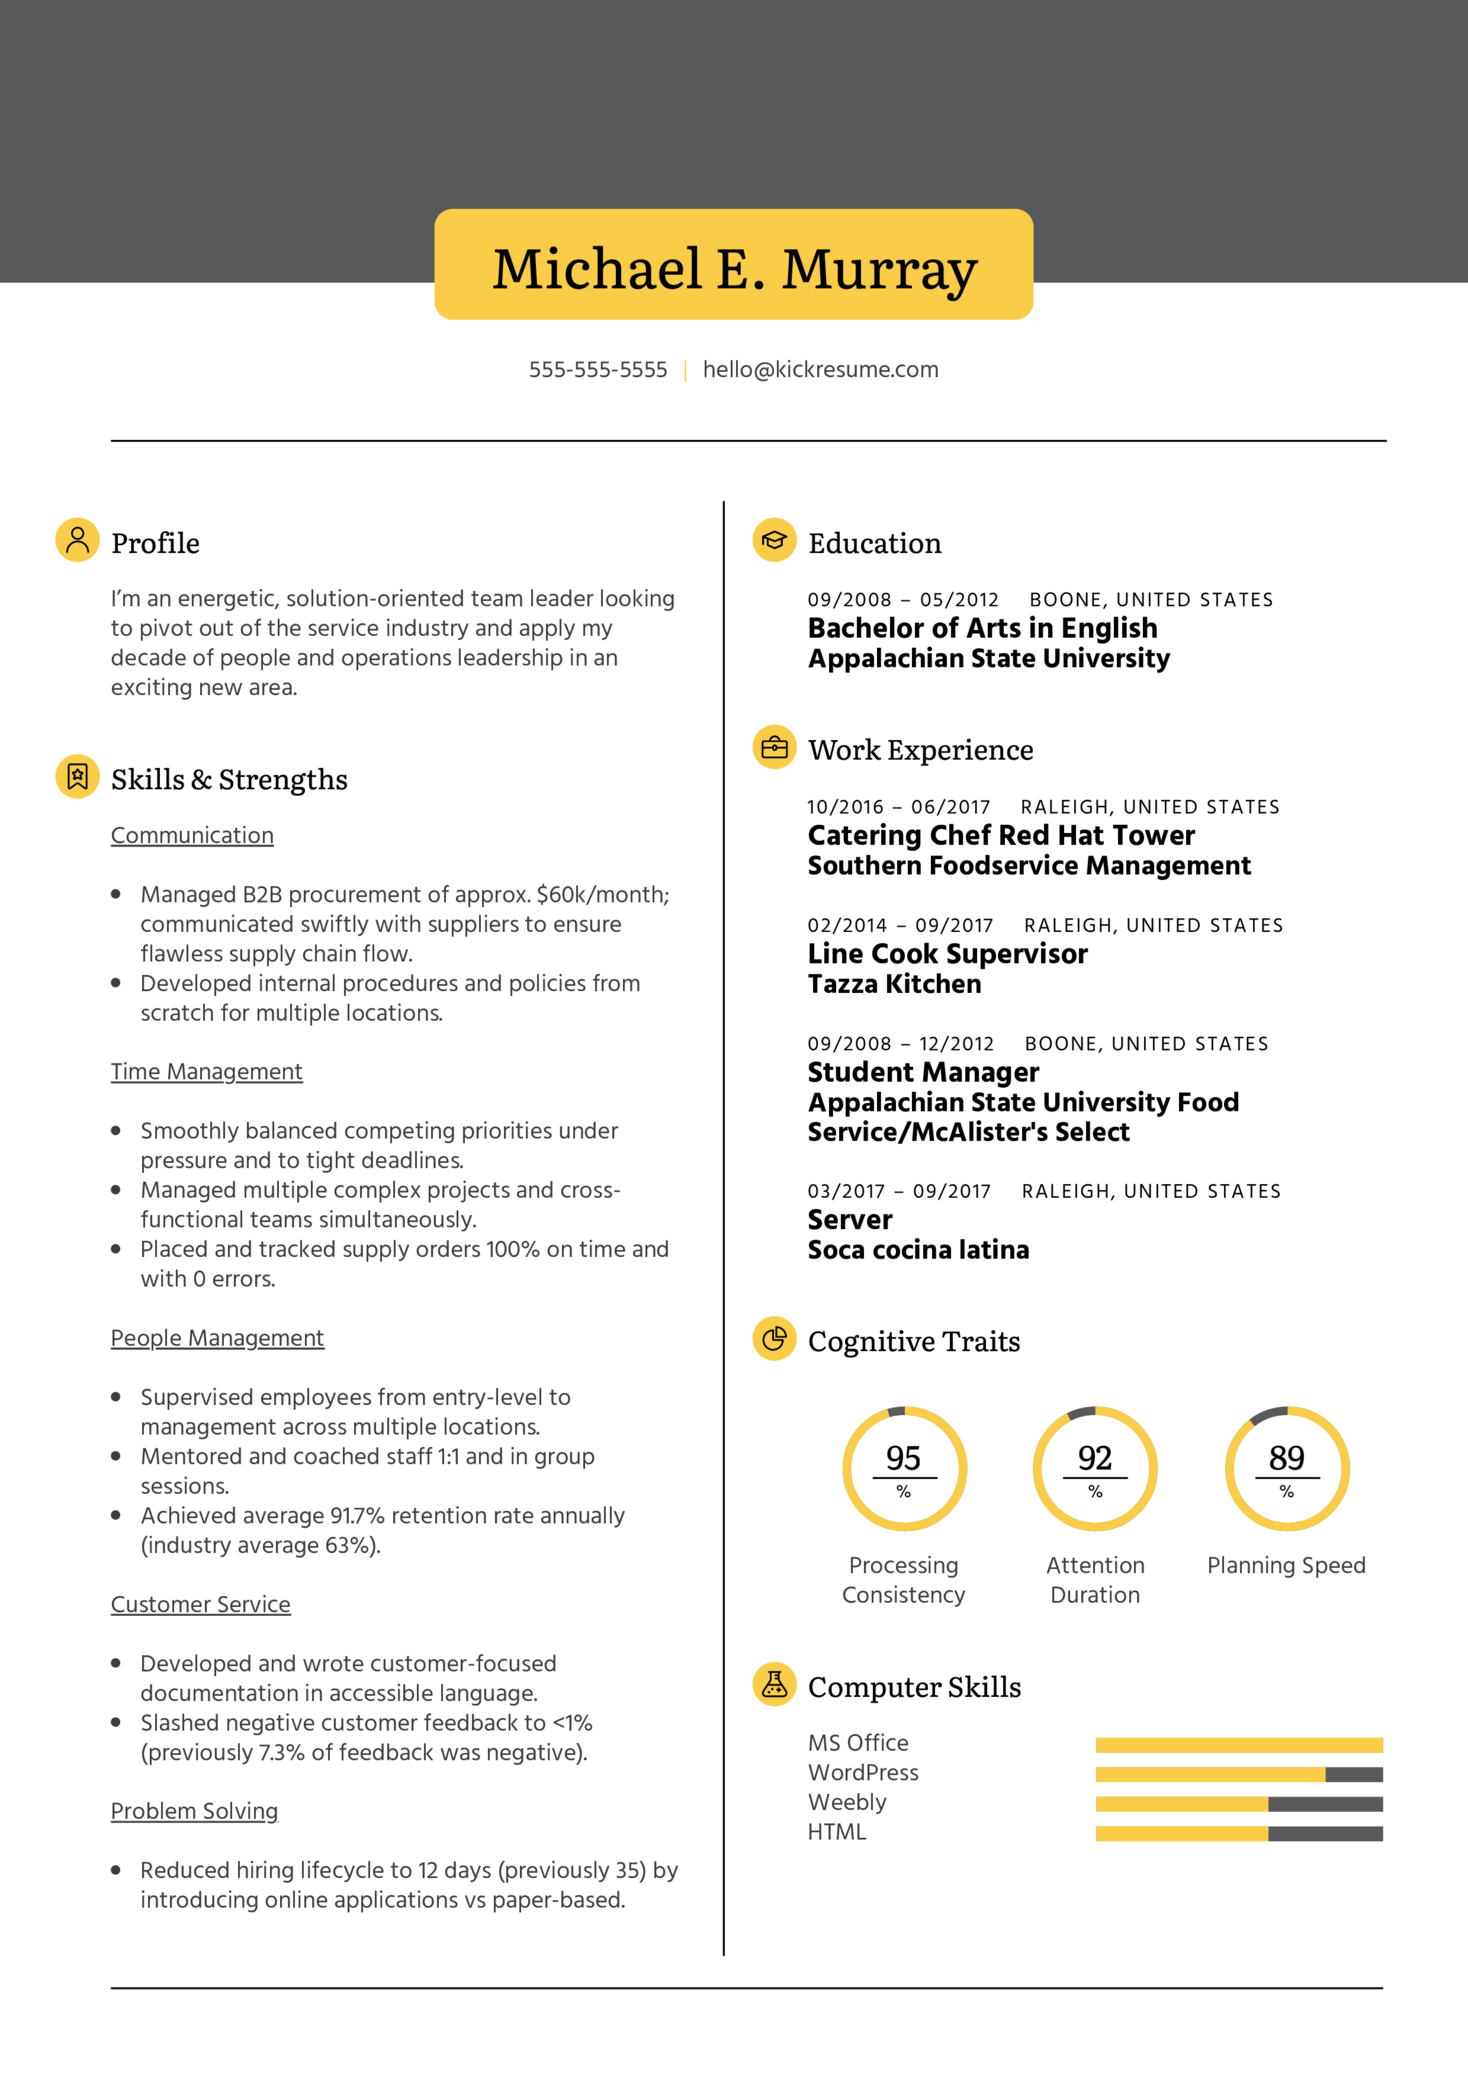 resume examples by real people  line cook supervisor cv